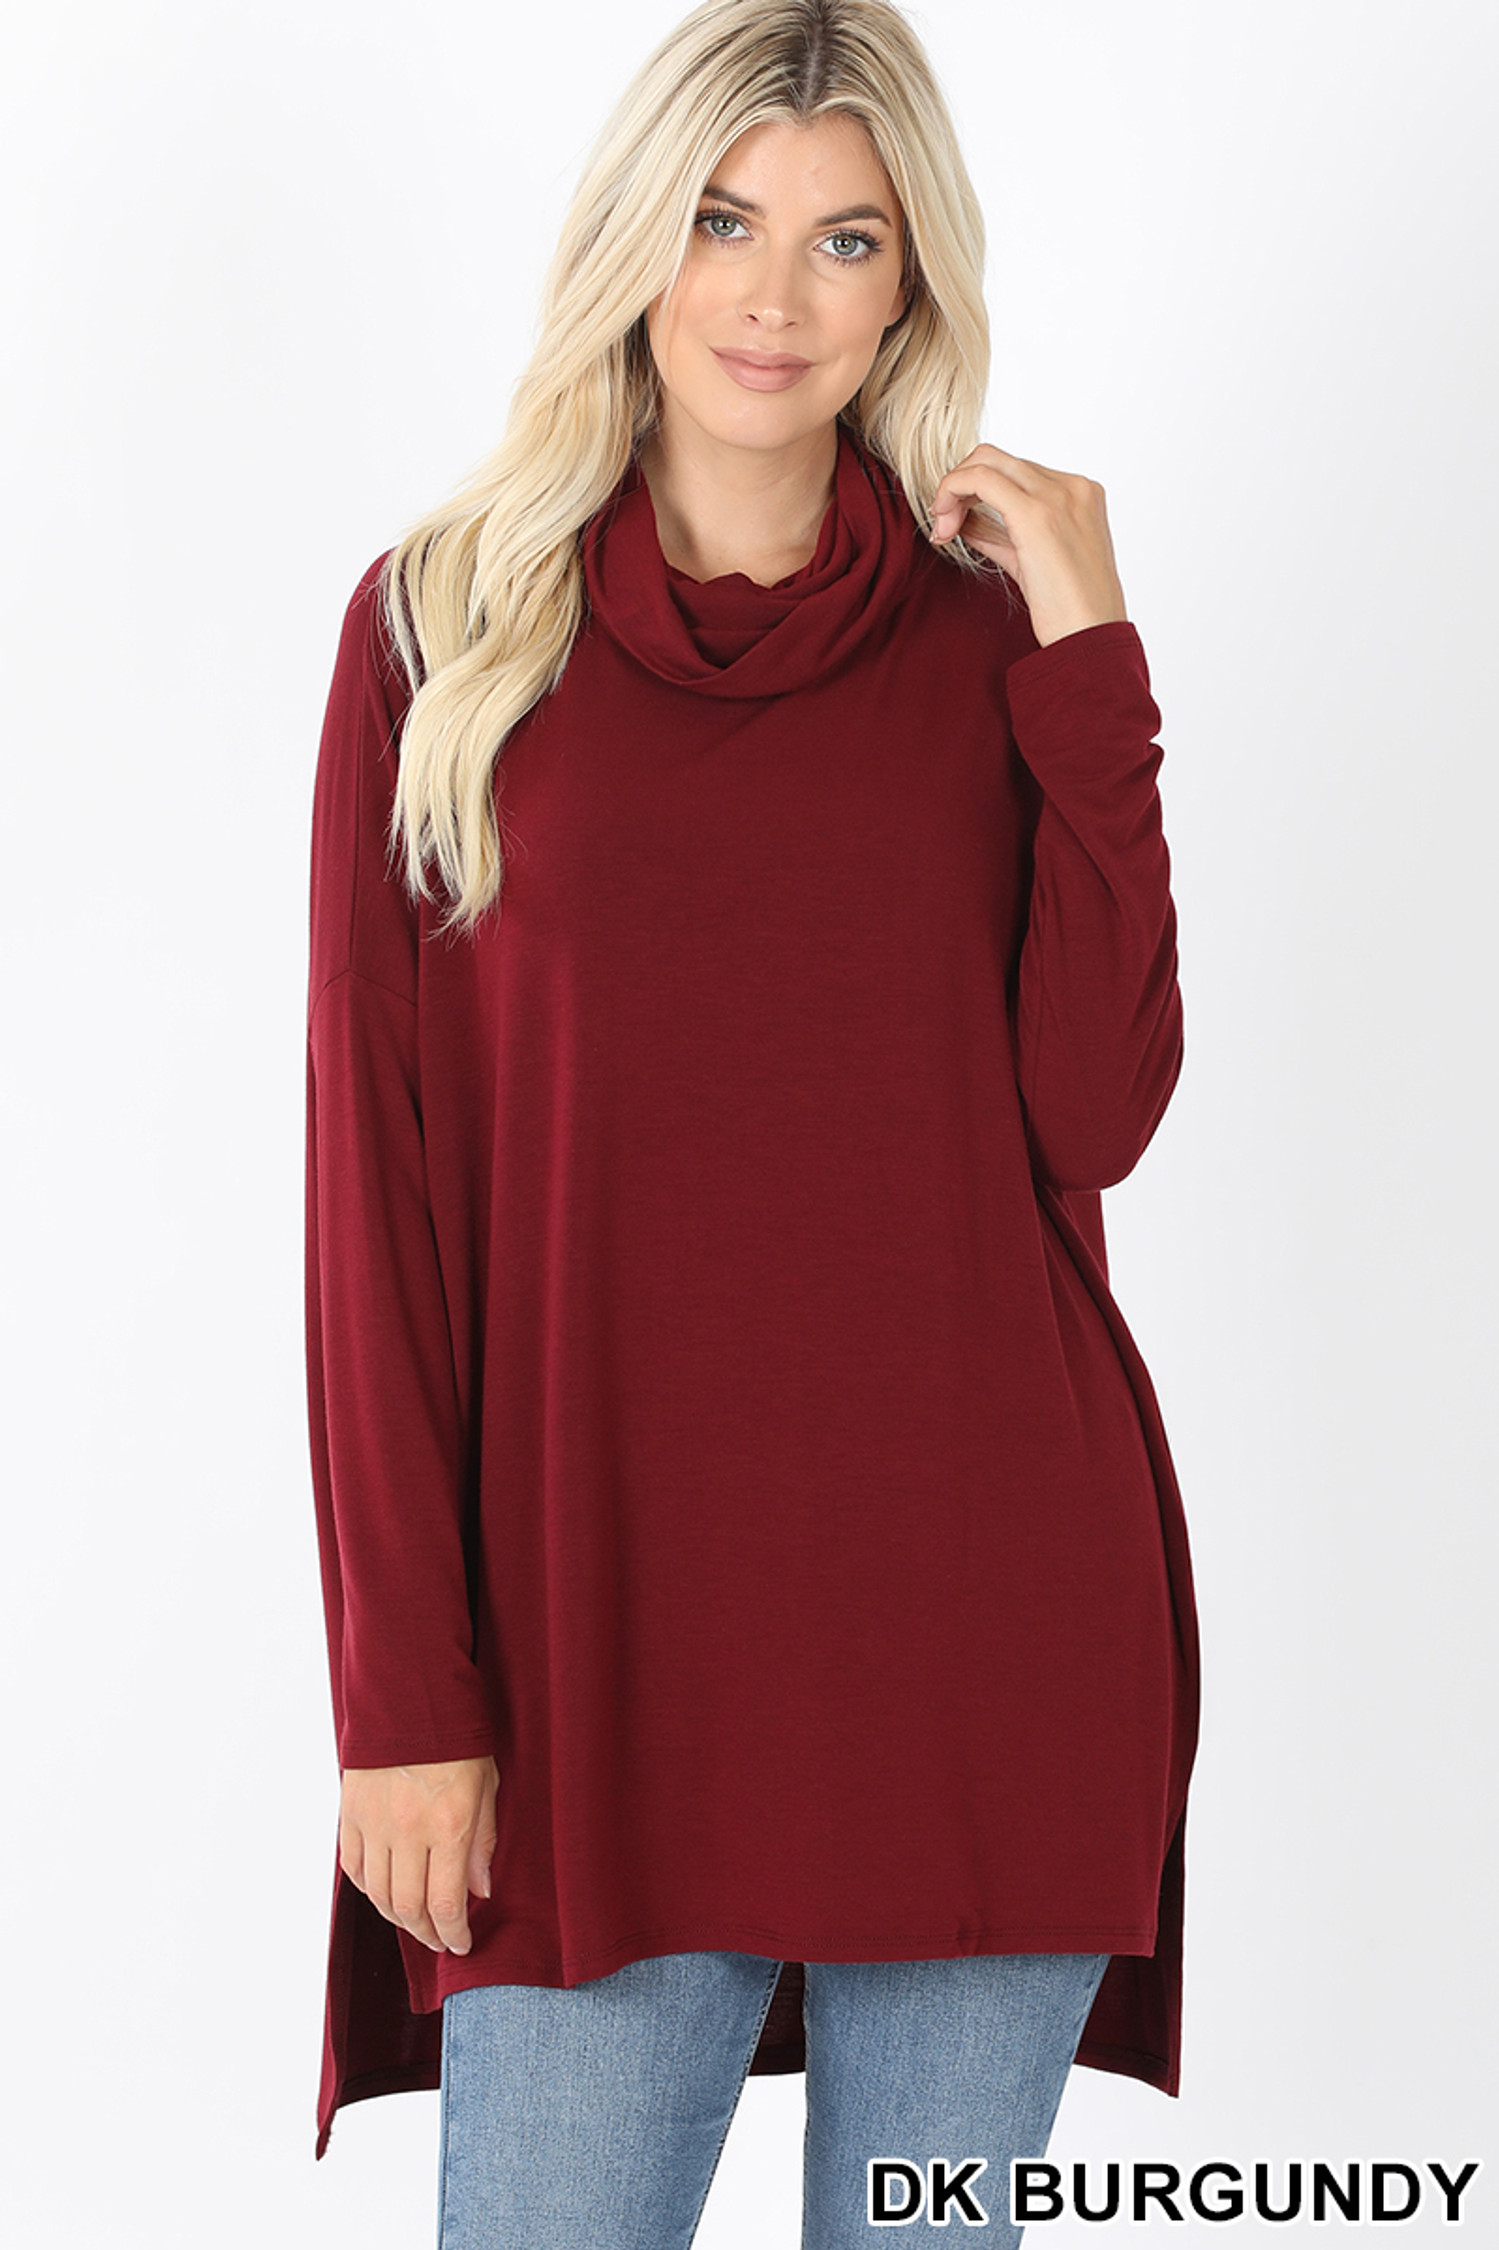 Front image of Dark Burgundy Cowl Neck Hi-Low Long Sleeve Plus Size Top